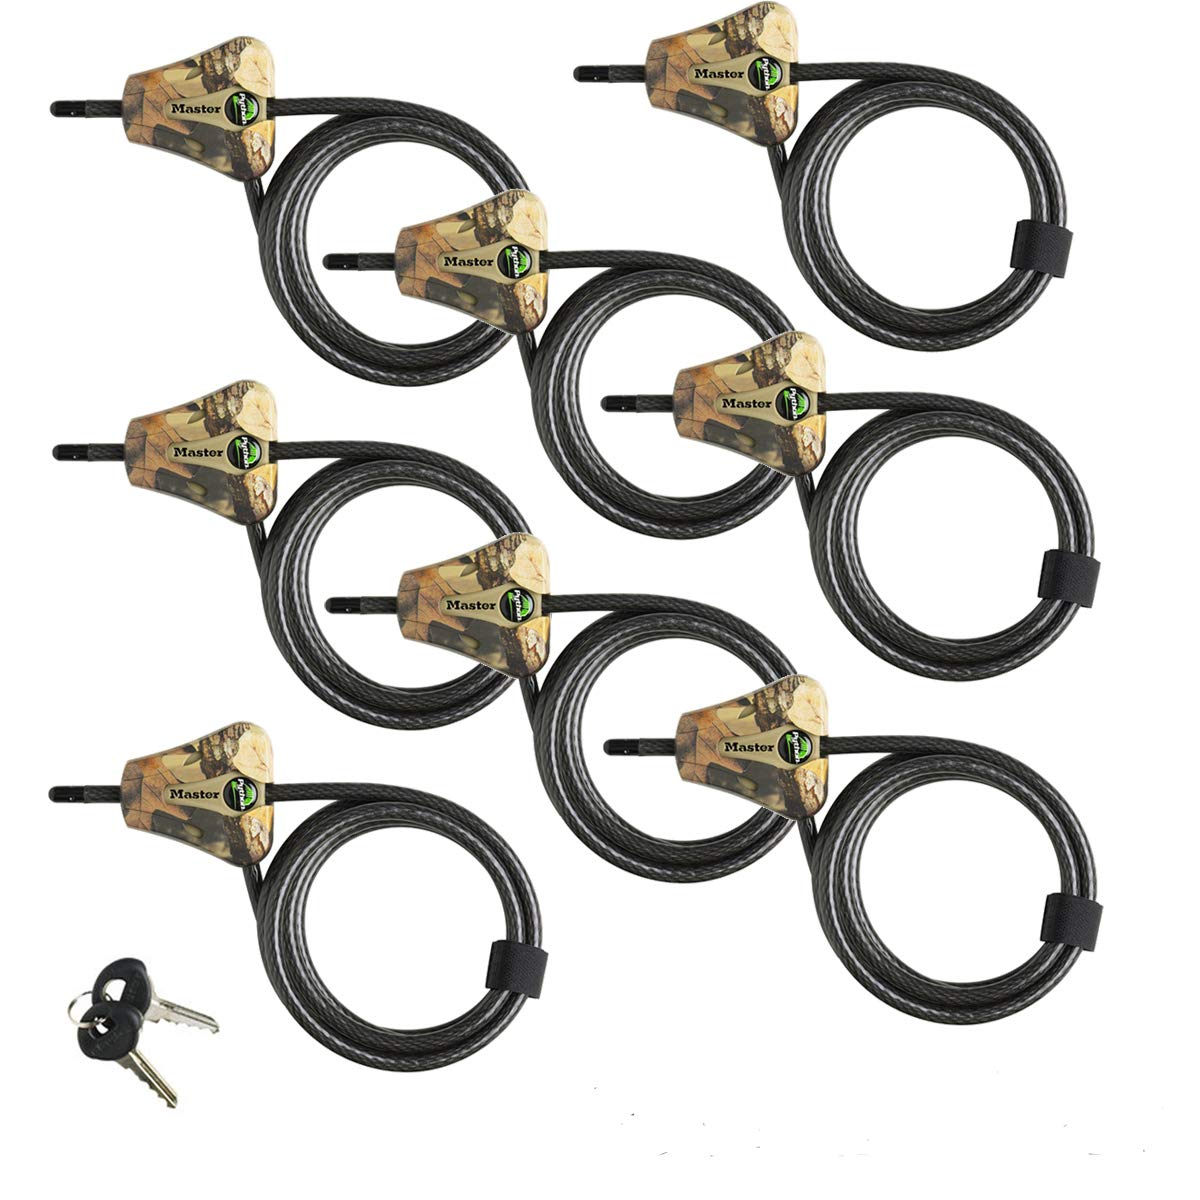 Master Lock - Python Trail Camera Adjustable Camouflage Cable Locks 8418KA-8 CAMO 8-pack by Master Lock